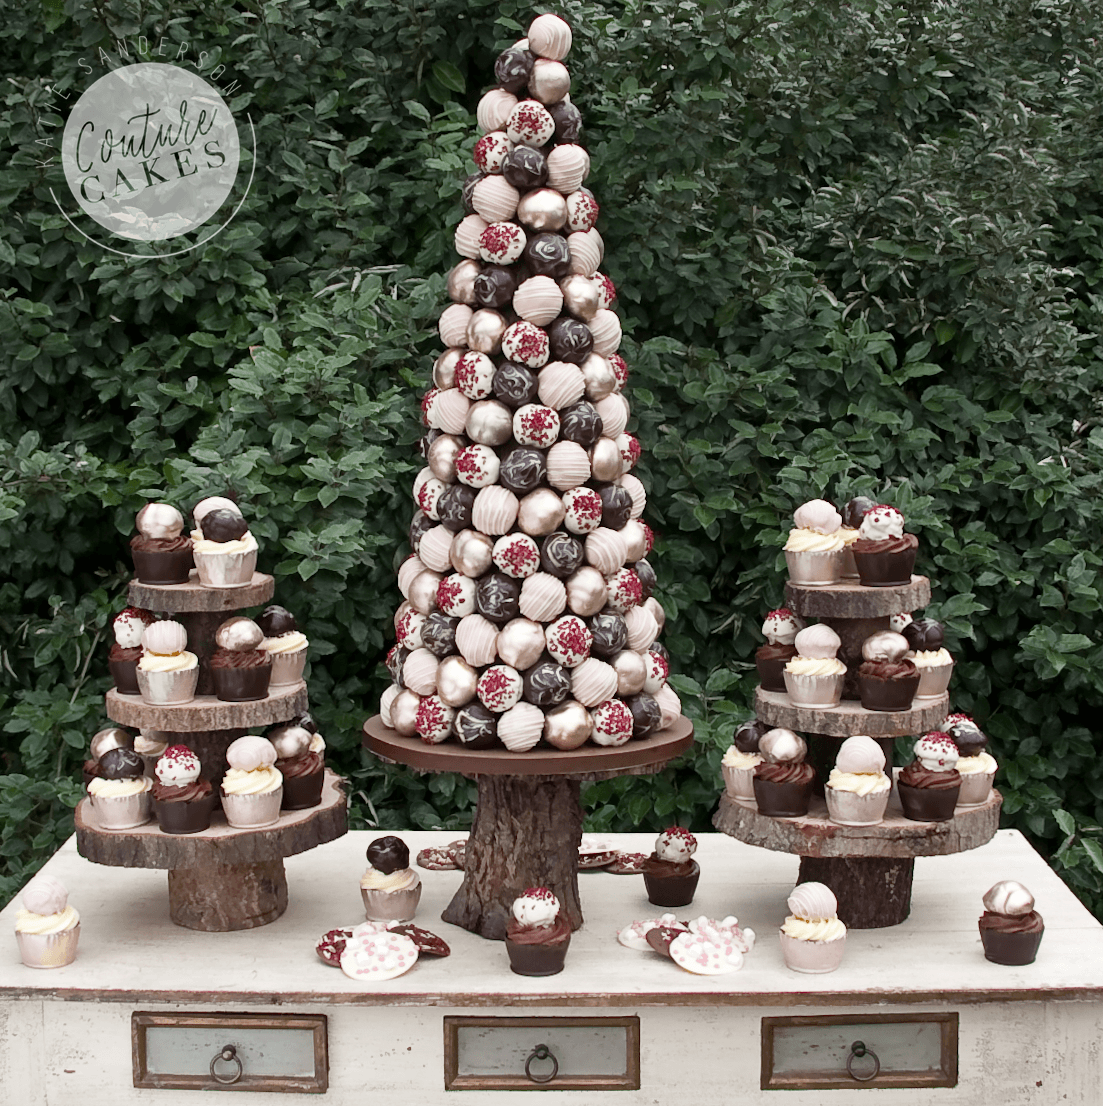 Provides 200 profiteroles and 40 cupcakes Price £395 (for 200 profiterole cone) plus £4.50 each for 40 cup cakes